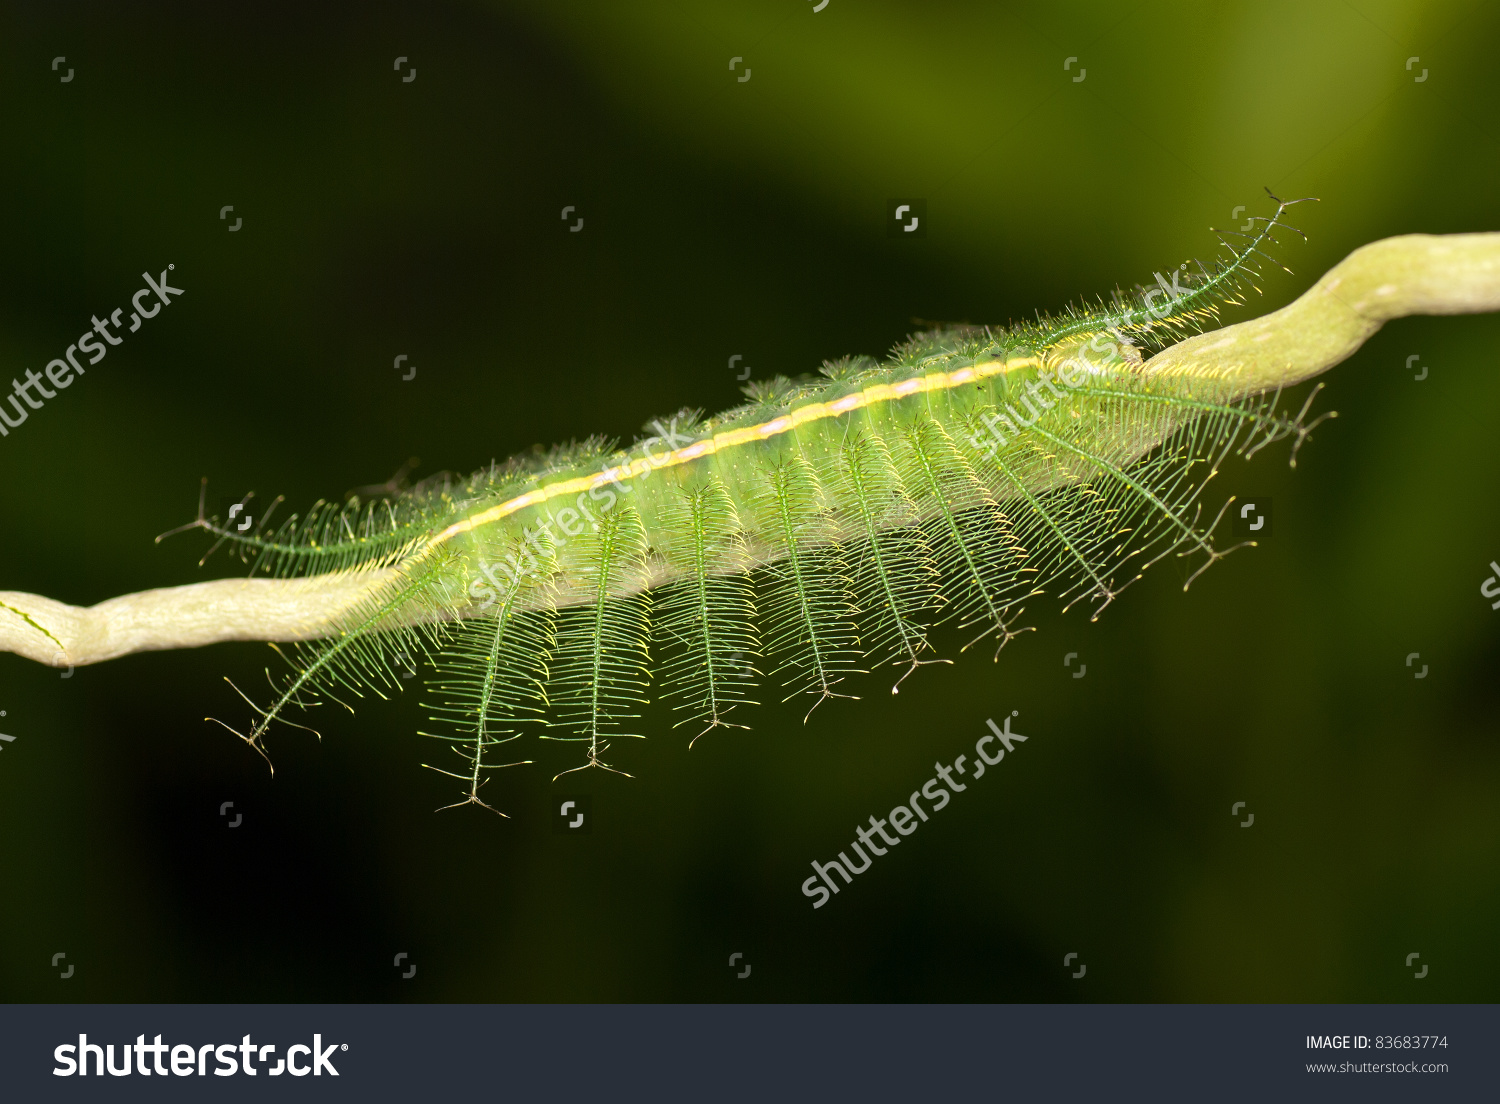 Caterpillar Of The Common Baron Butterfly Stock Photo 83683774.